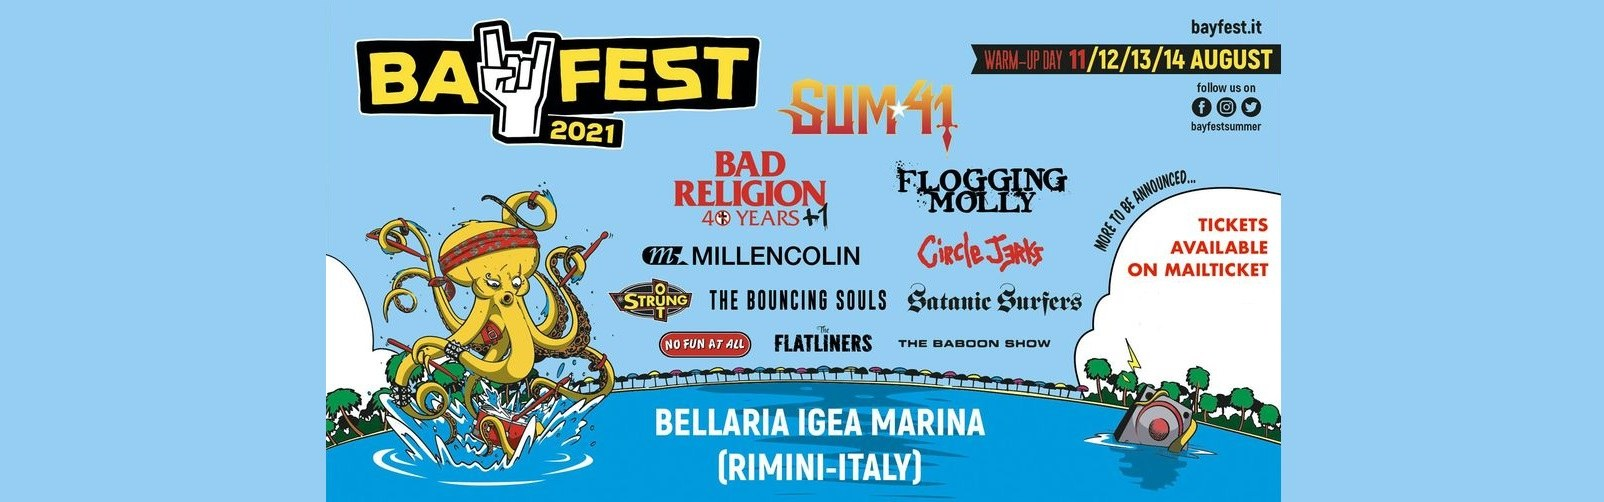 Bay Fest 2021 Bellaria Igea Marina biglietti Mailticket tickets and camping Sum 41 Millencolin Bad Religion